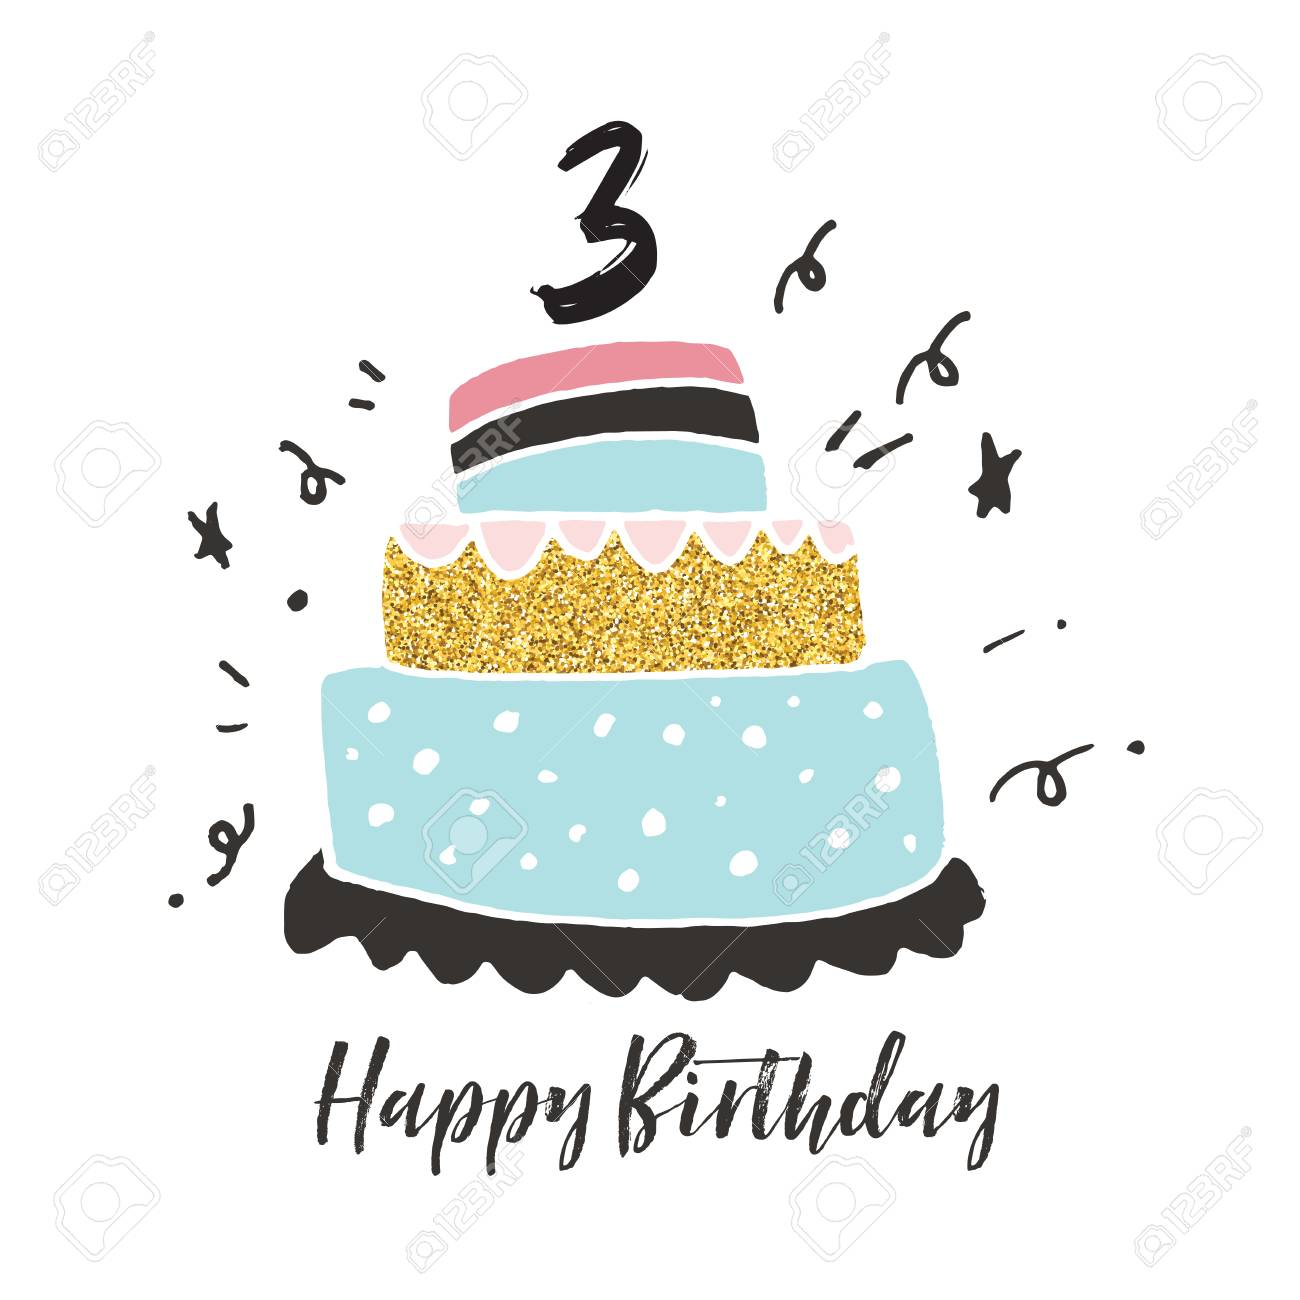 Astounding 3Rd Birthday Hand Drawn Cake Birthday Card Stock Photo Picture Funny Birthday Cards Online Overcheapnameinfo